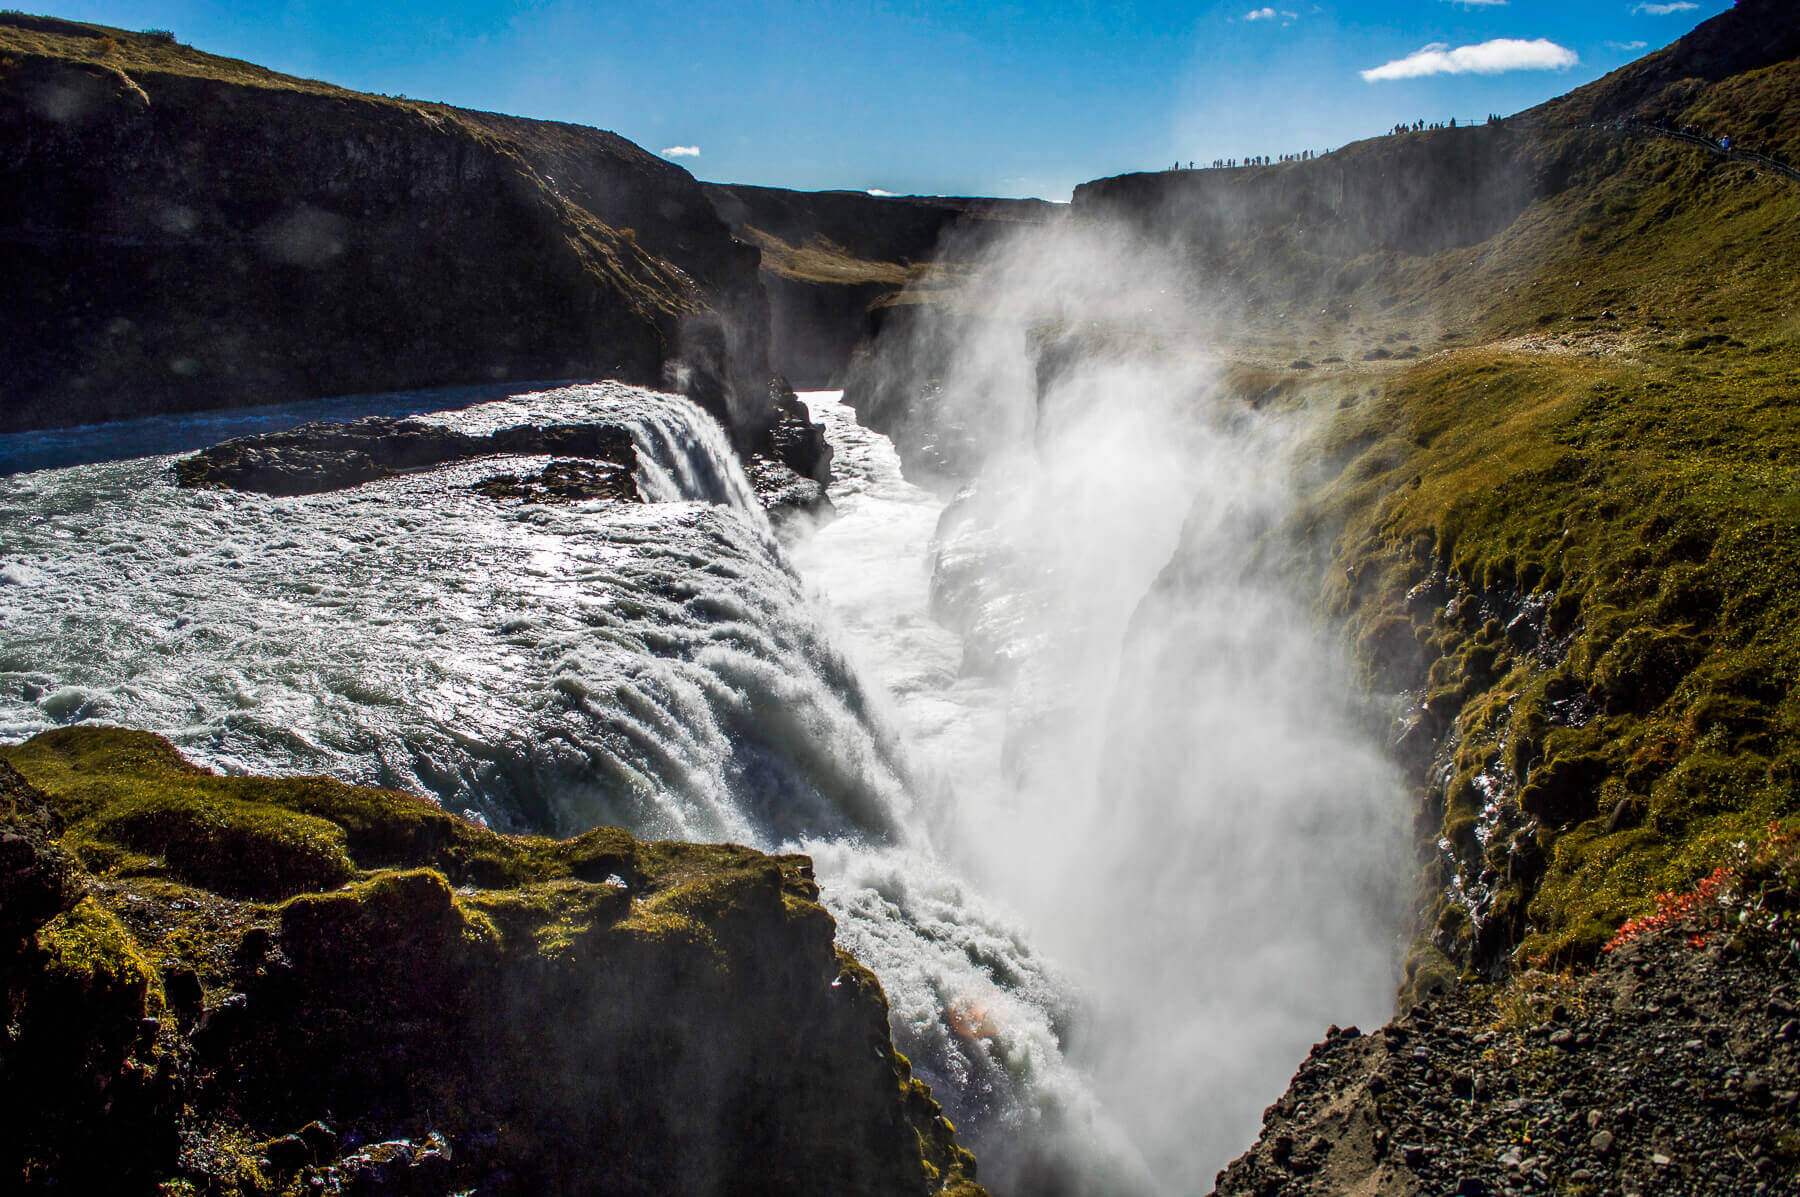 A powerful waterfall between a canyon - Gulfoss